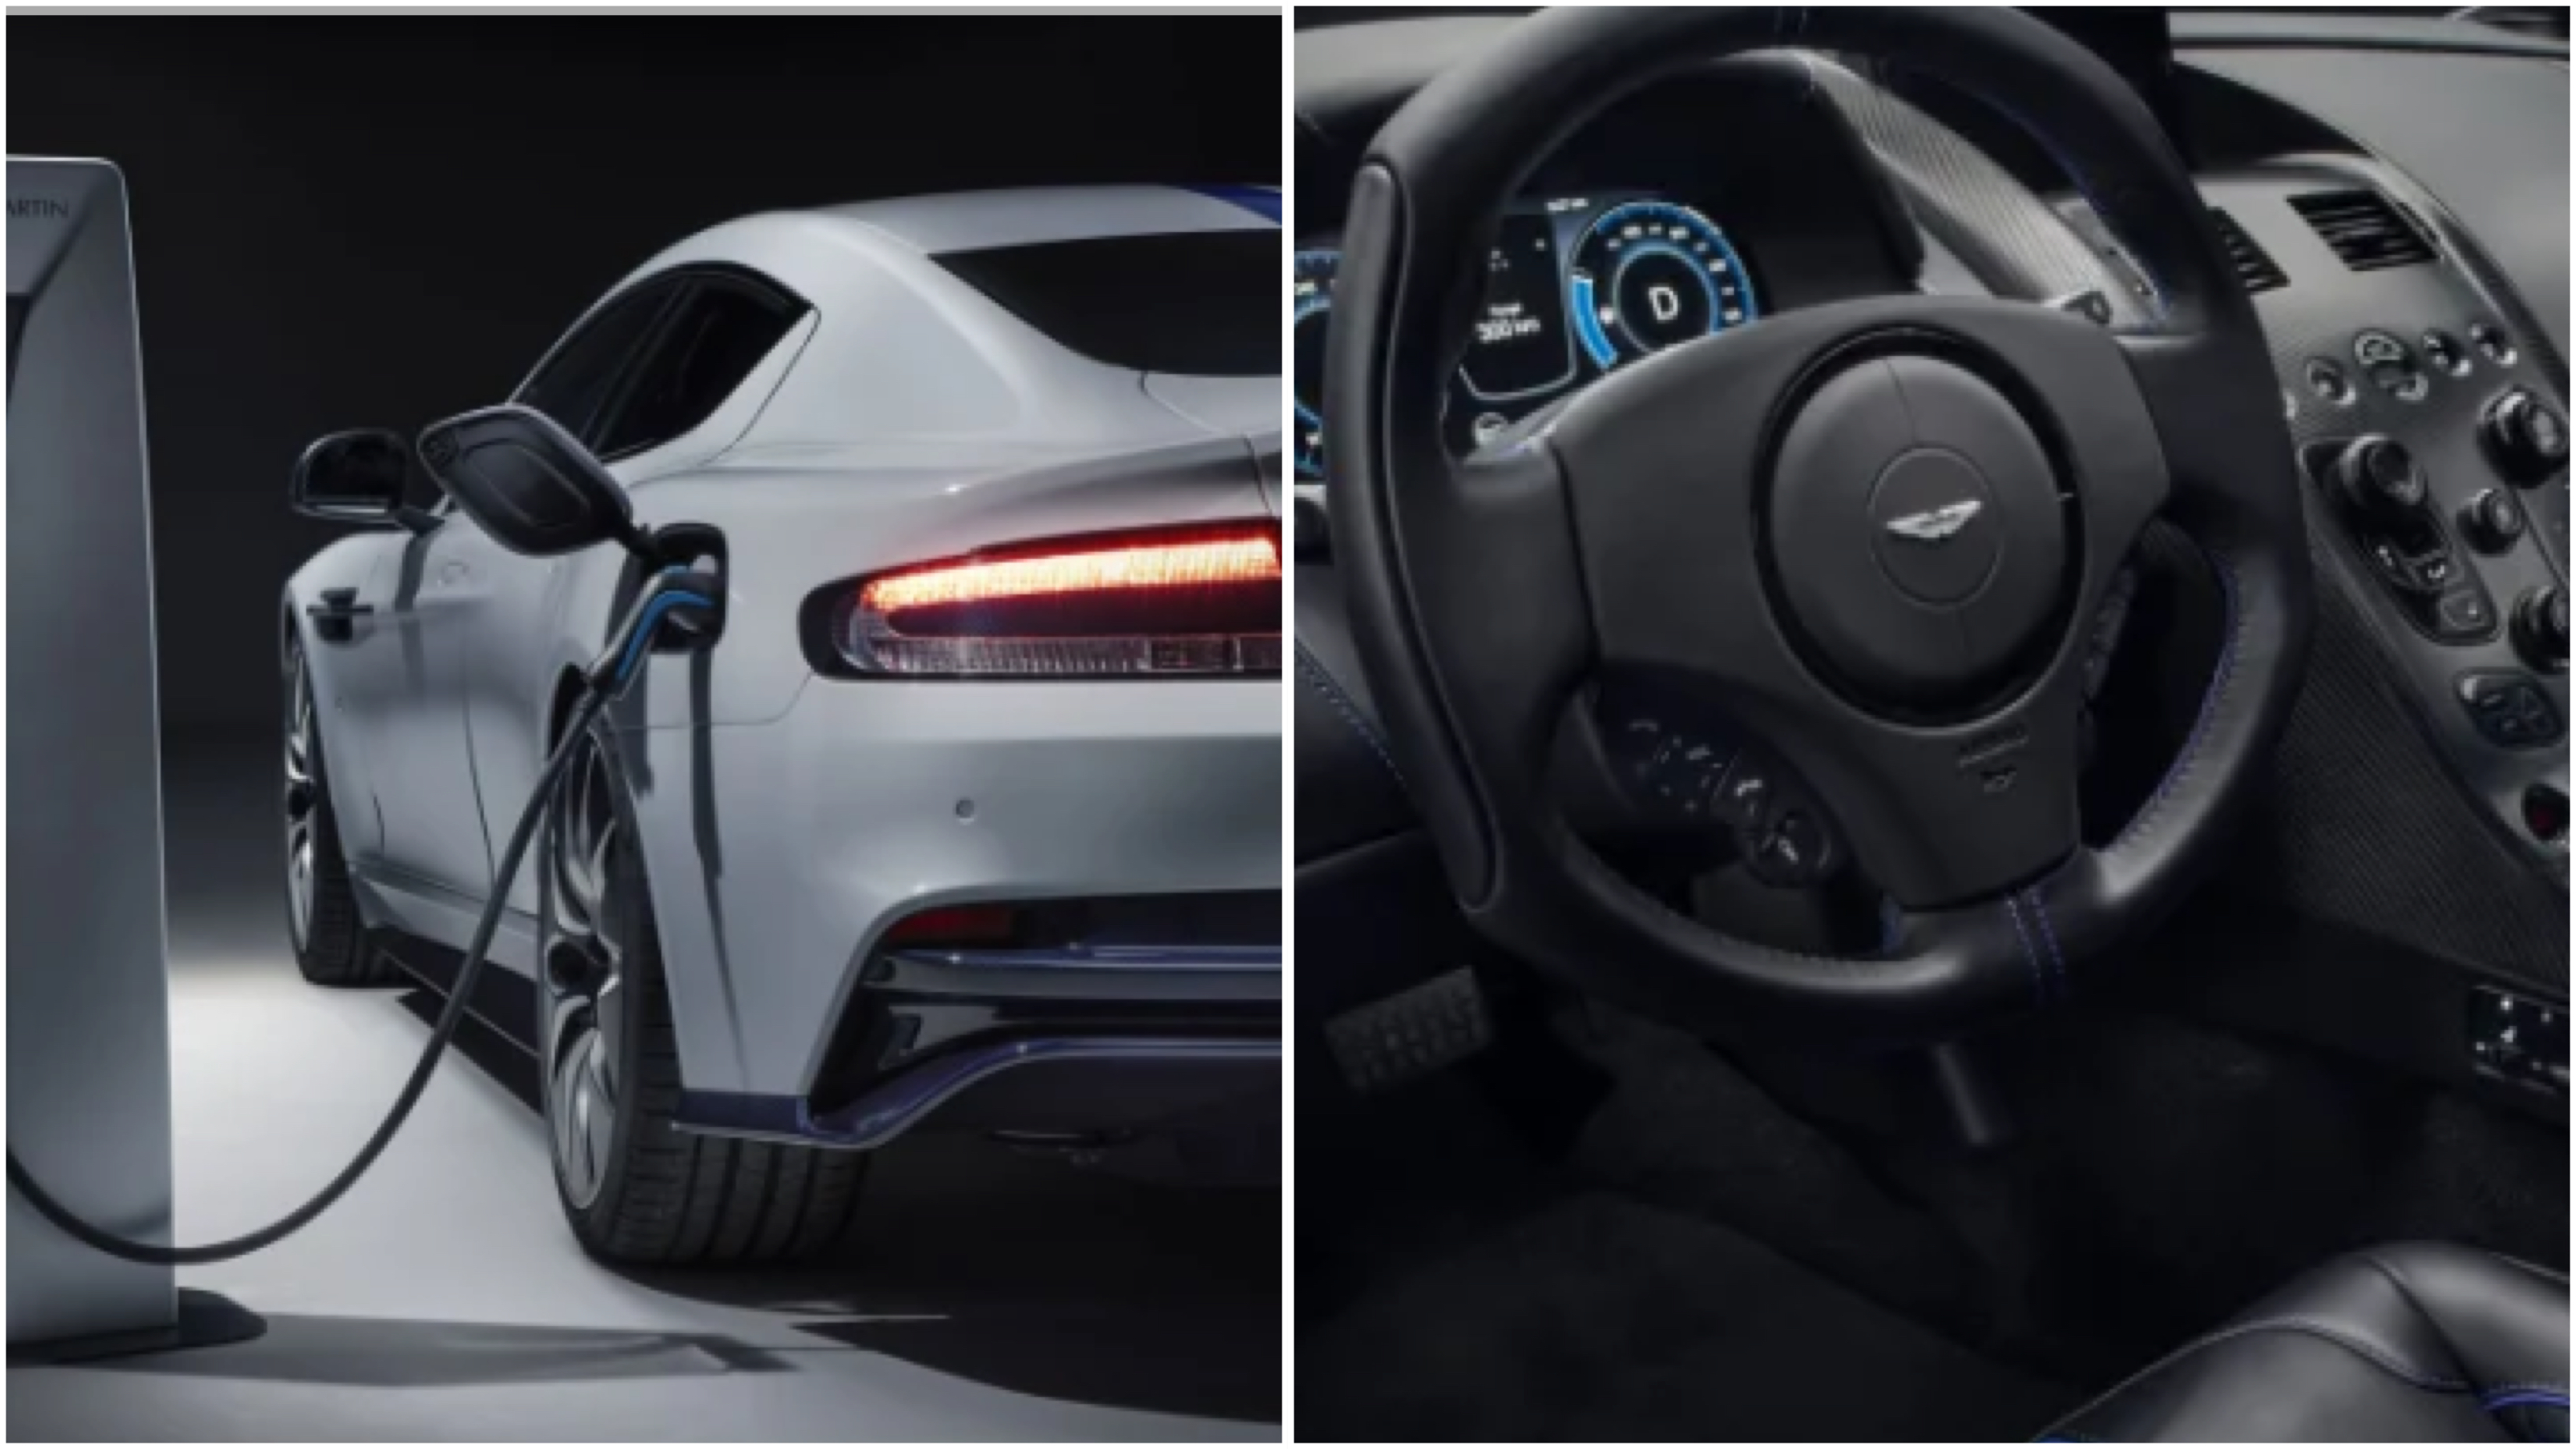 Luxury British brand Aston Martin unveiled their first electric car at the Shanghai Motor Show.